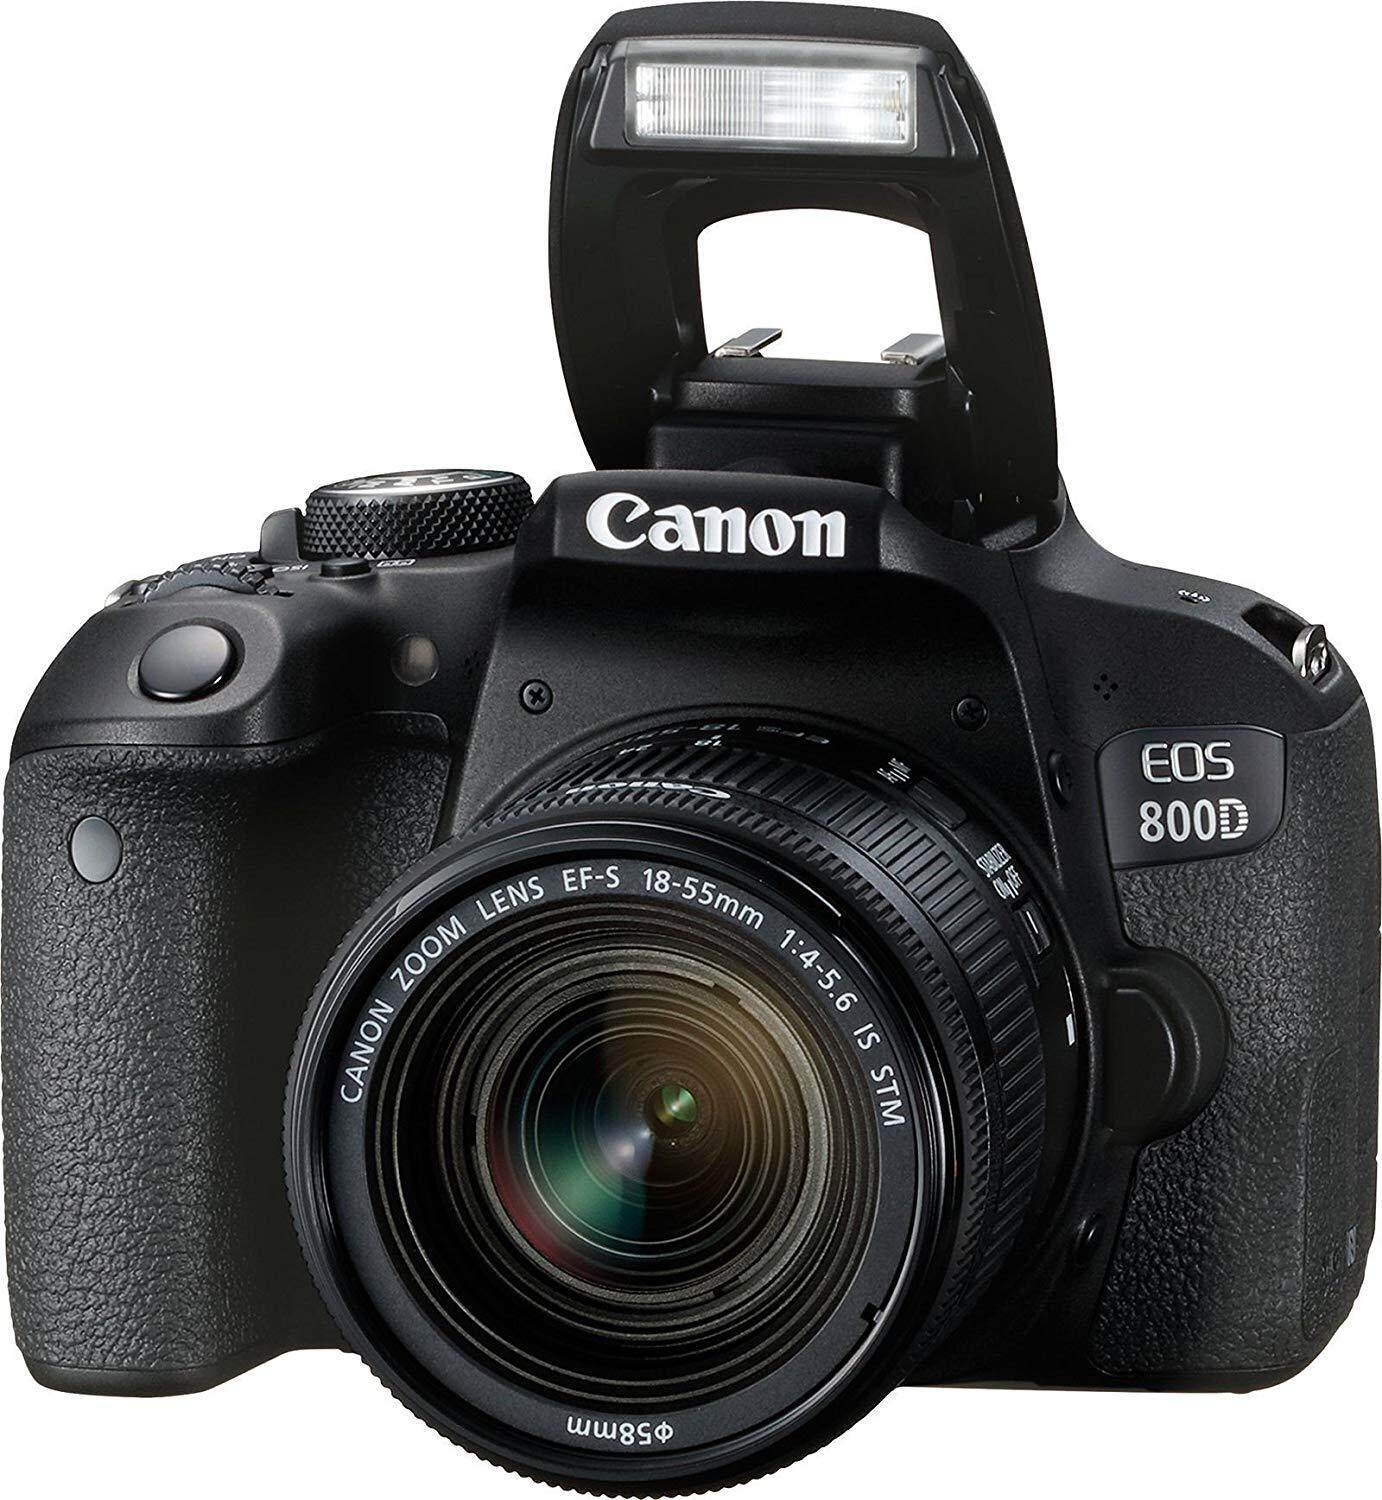 Canon EOS 800D DSLR Camera with EF-S 18-55mm f/4-5.6 IS STM Lens ( ORIGINAL Canon Malaysia)(Online Redeem Battery pack LP-E17 + CASHBACK RM200 ) 1 AUGUST 2018 - 30 SEPTEMBER 2018